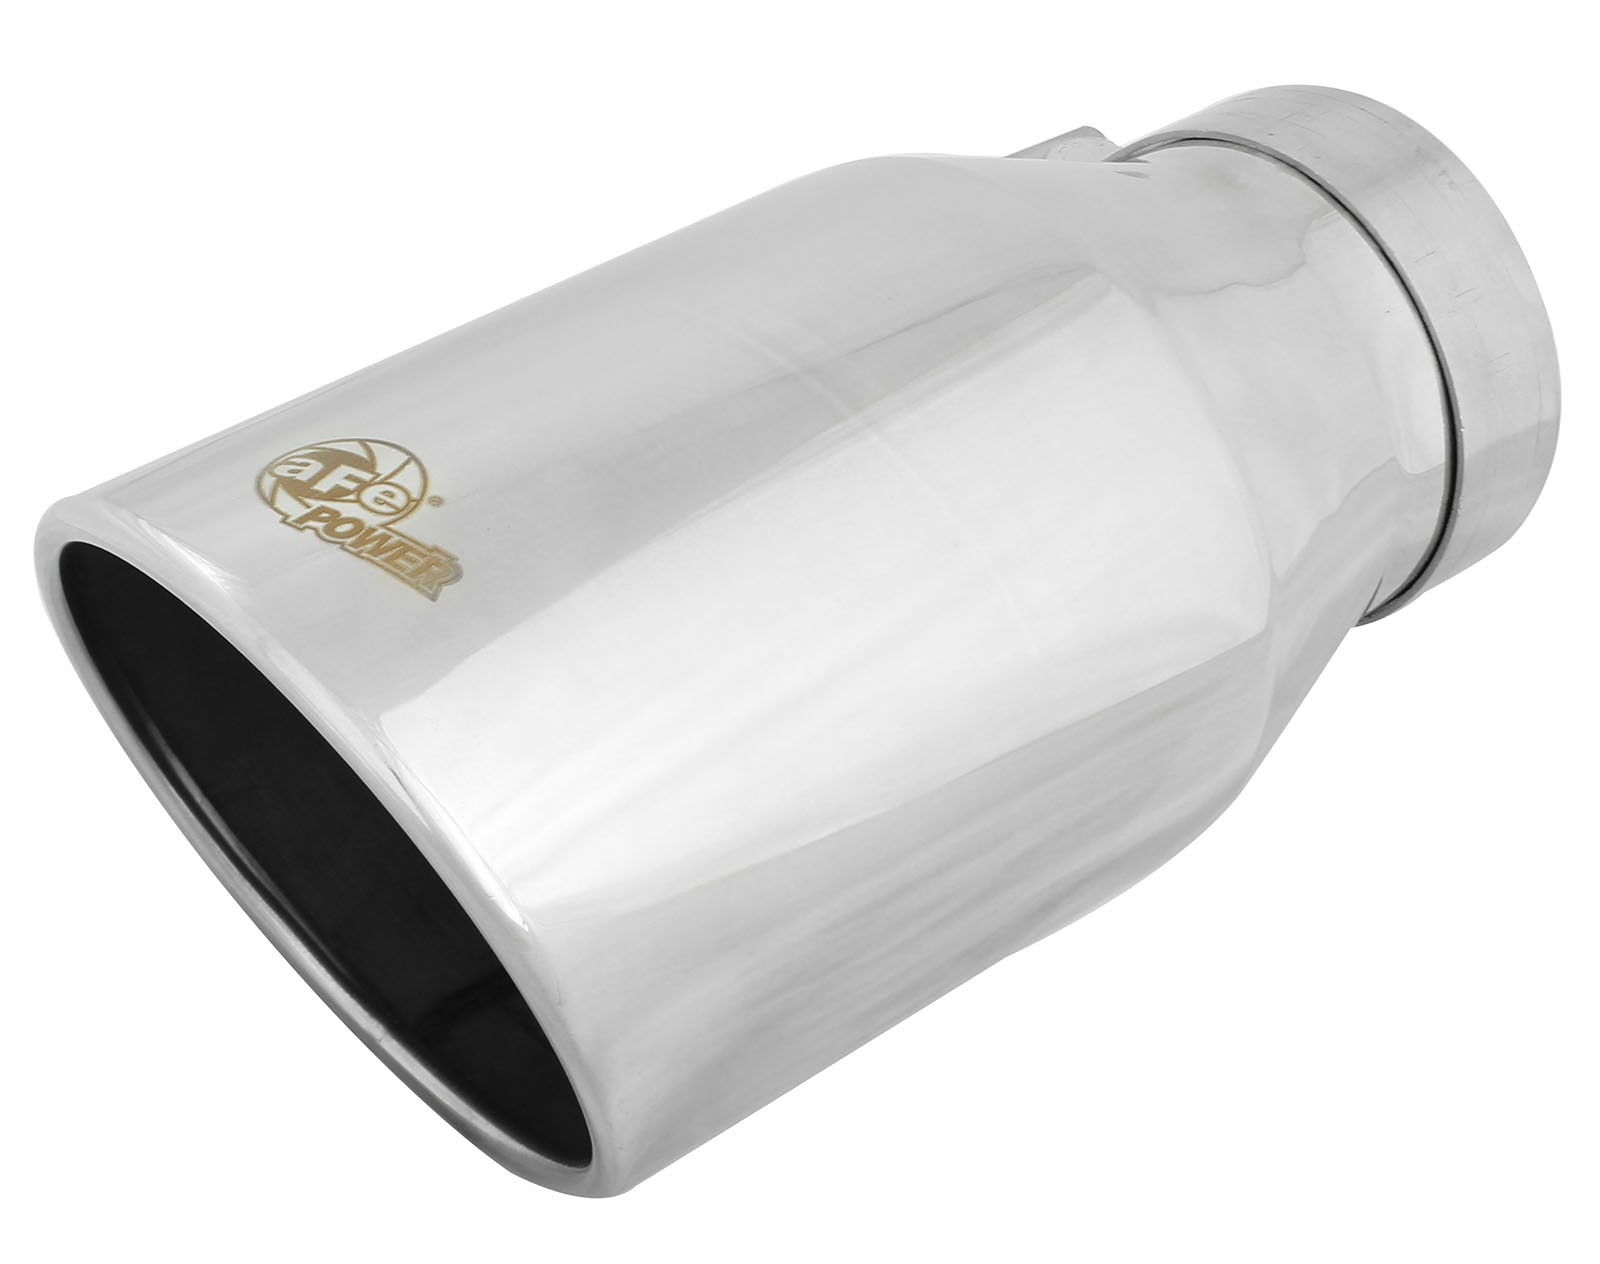 "aFe POWER 49T40604-P12 MACH Force-Xp 4"" 304 Stainless Steel Exhaust Tip"